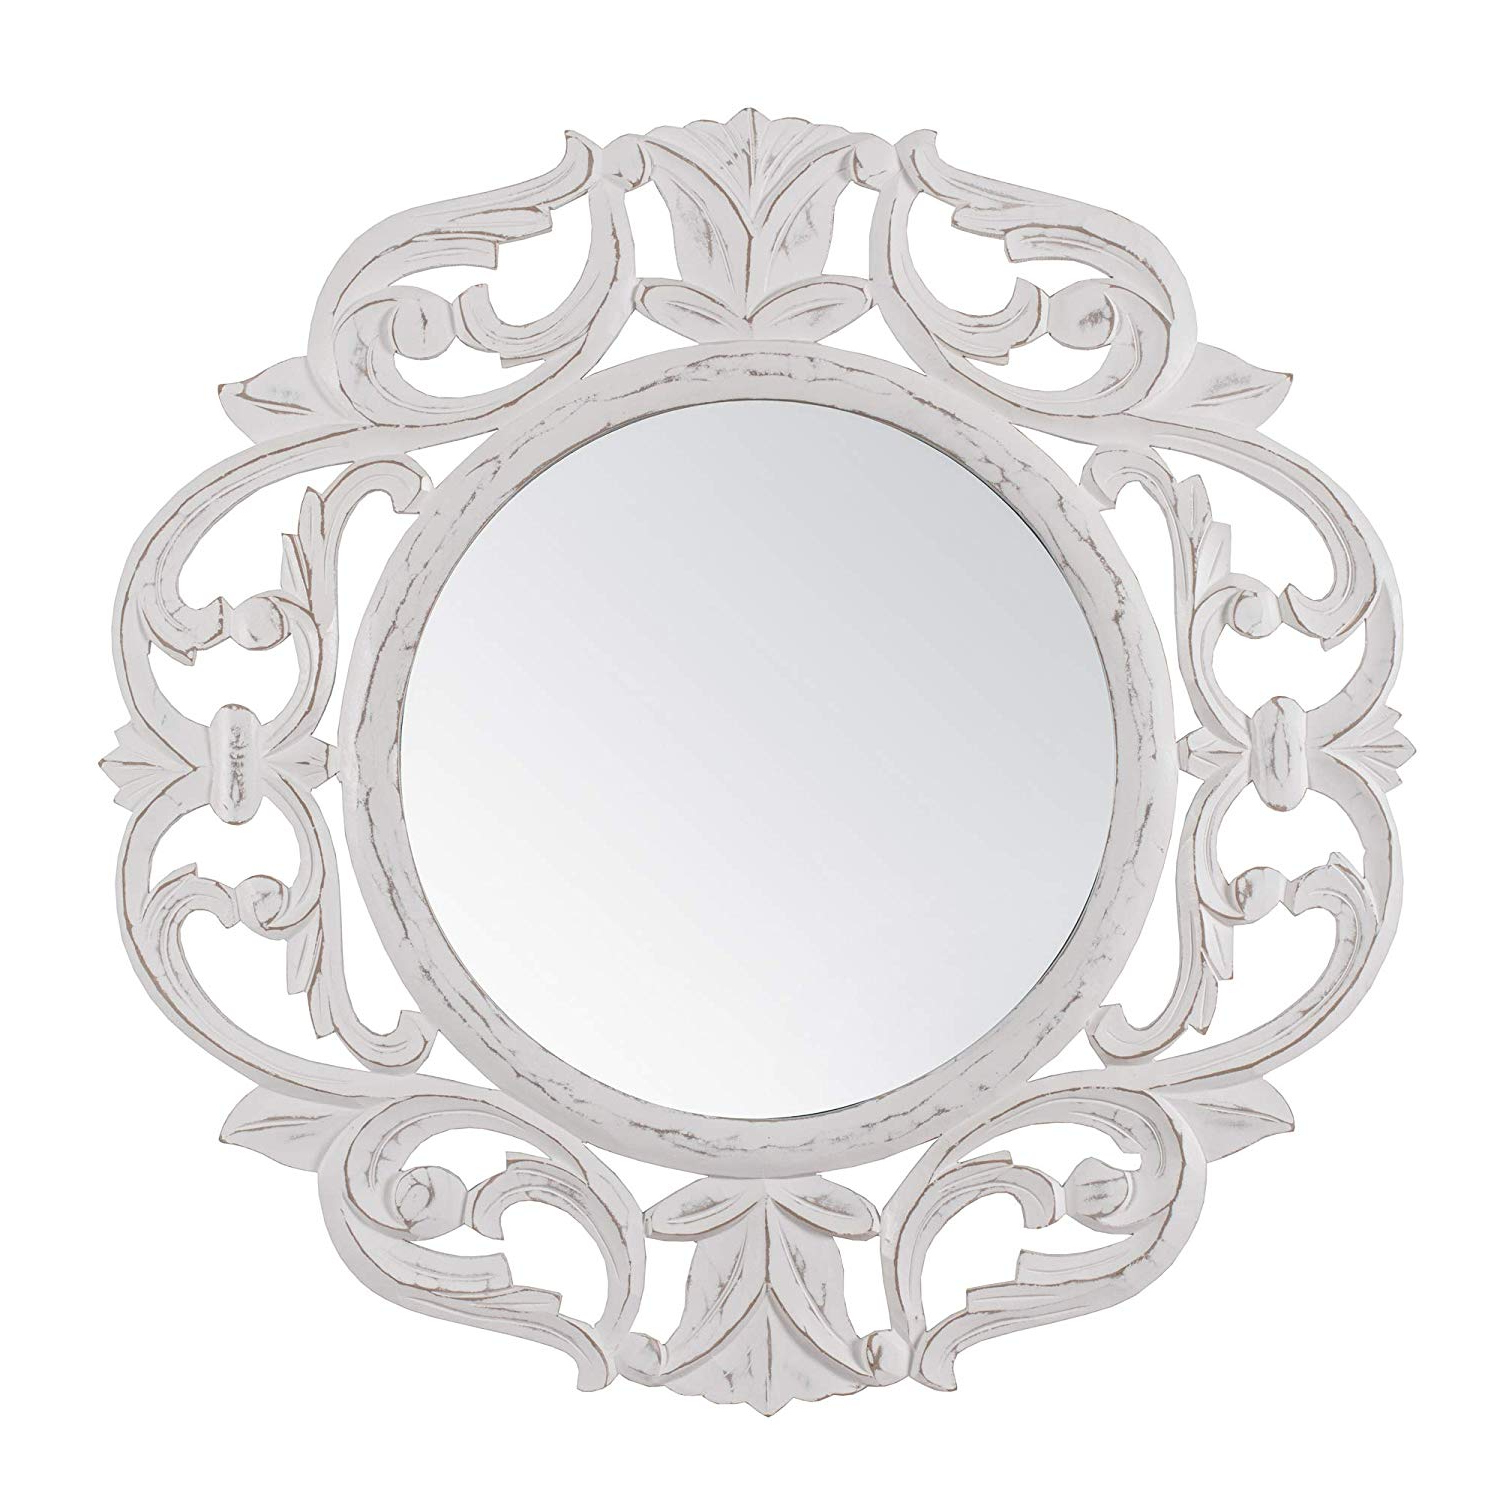 Minimalistic & Modern Carved Wall Mount Accent Mirror Perfect For Bathroom, Powder Room, Hallway, Living (View 15 of 20)